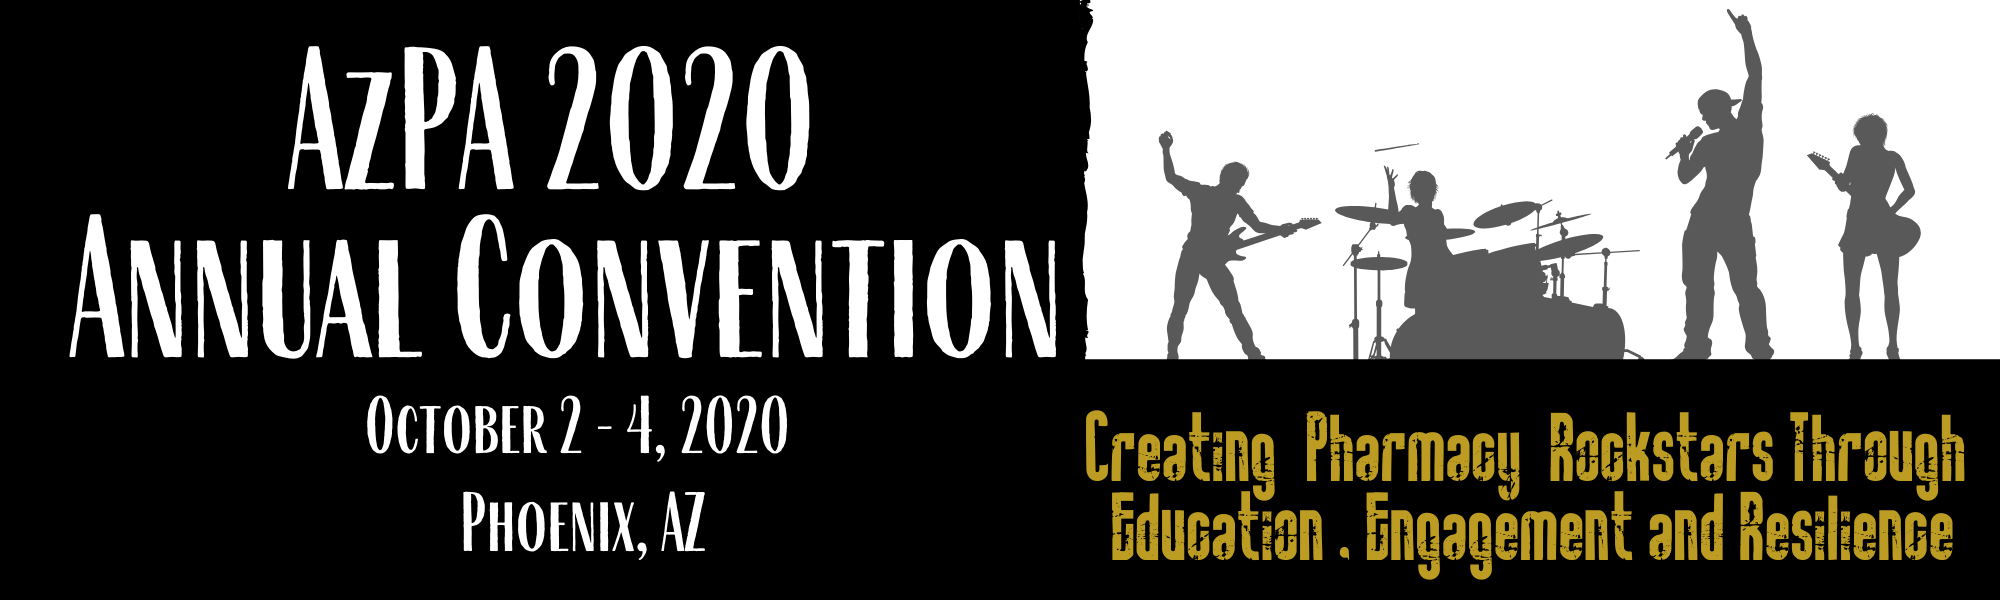 Web Banner for Convention 2020 (2)